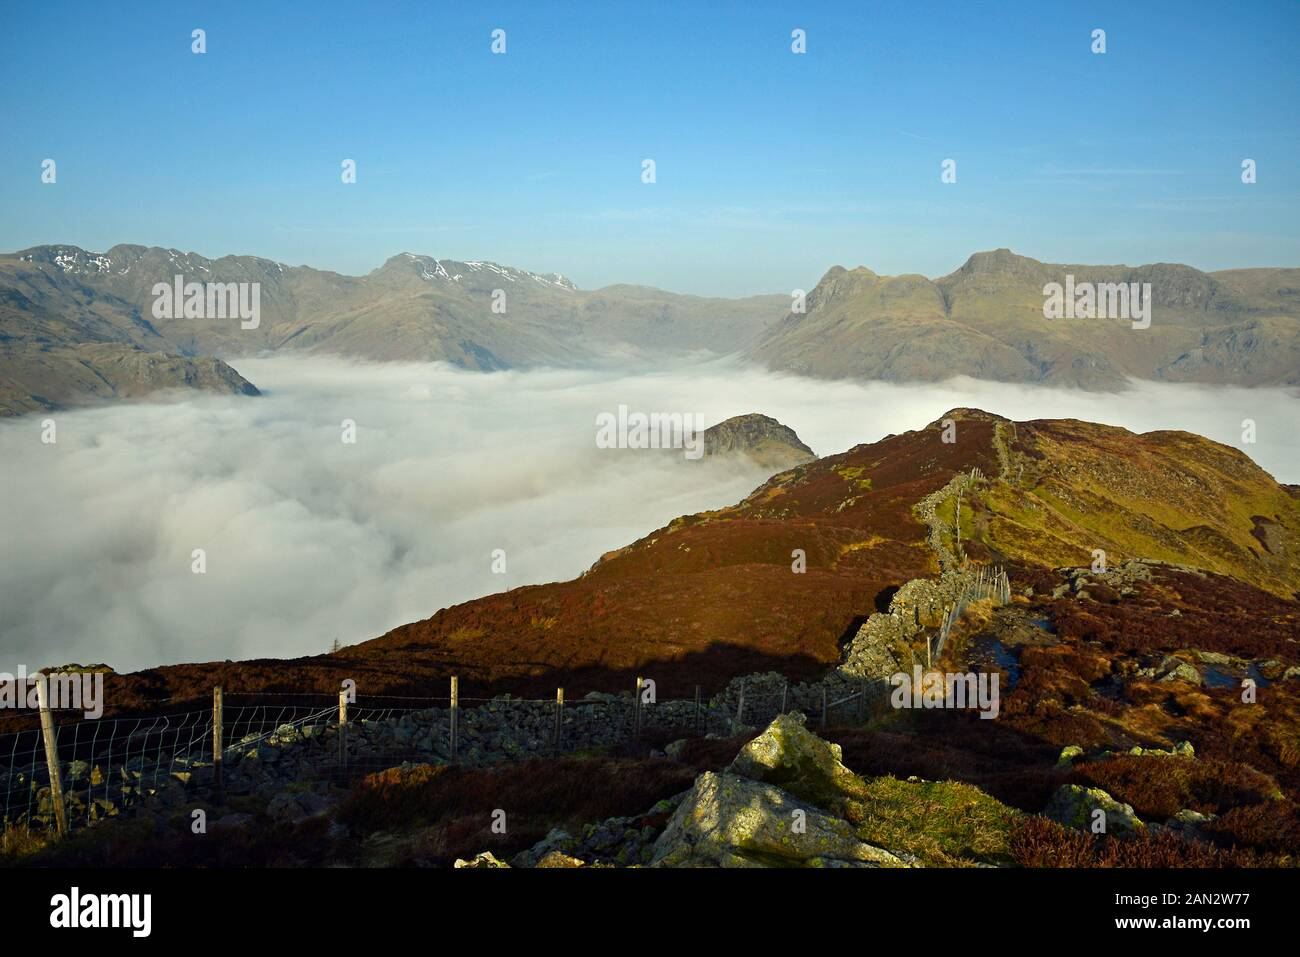 The Langdale Pikes and the Langdale Boulders, In the Lake Districkt National Park Stock Photo